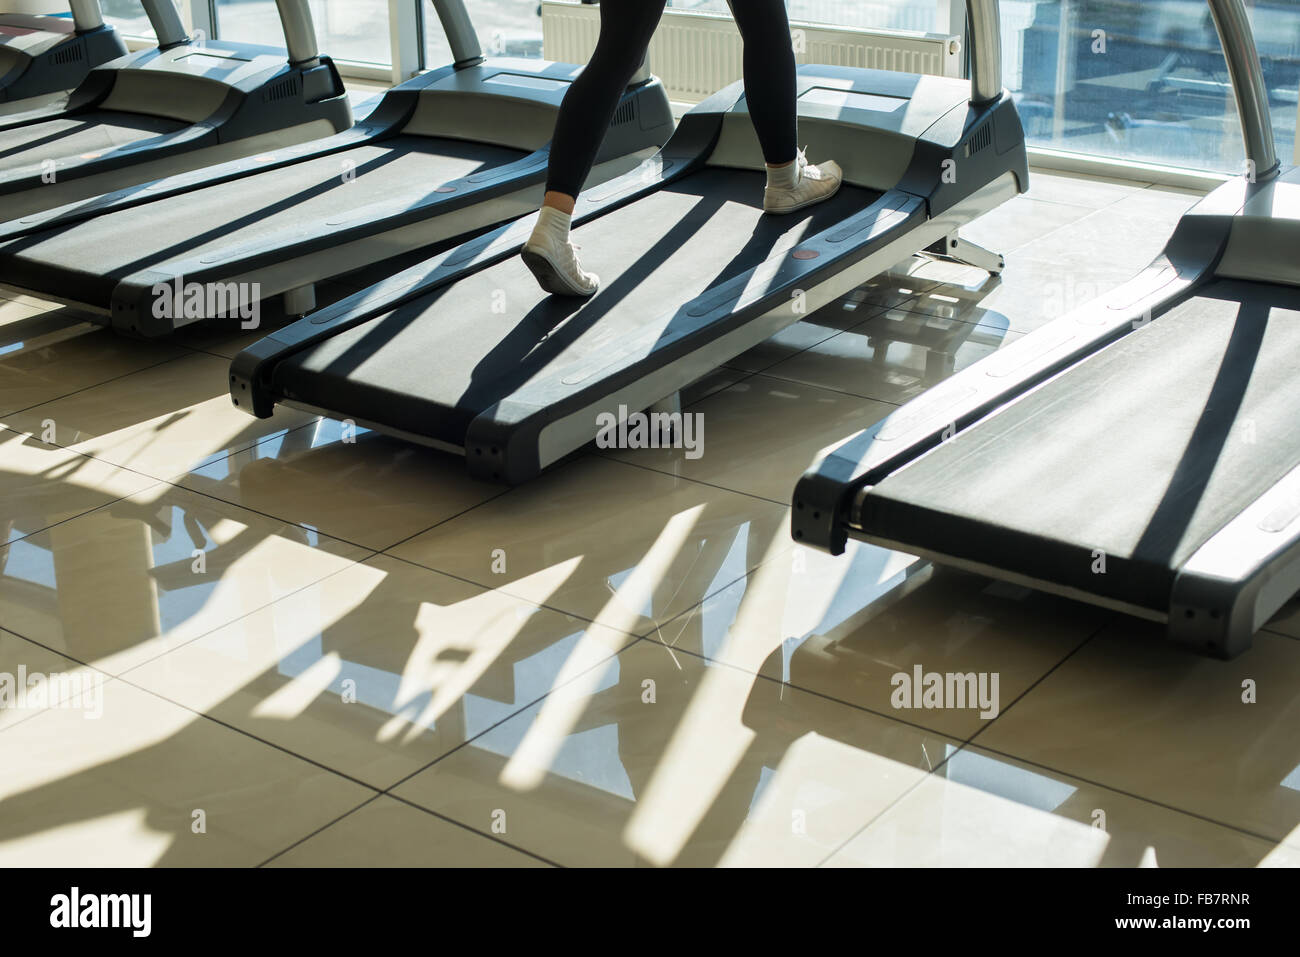 Treadmills in gym hall. - Stock Image